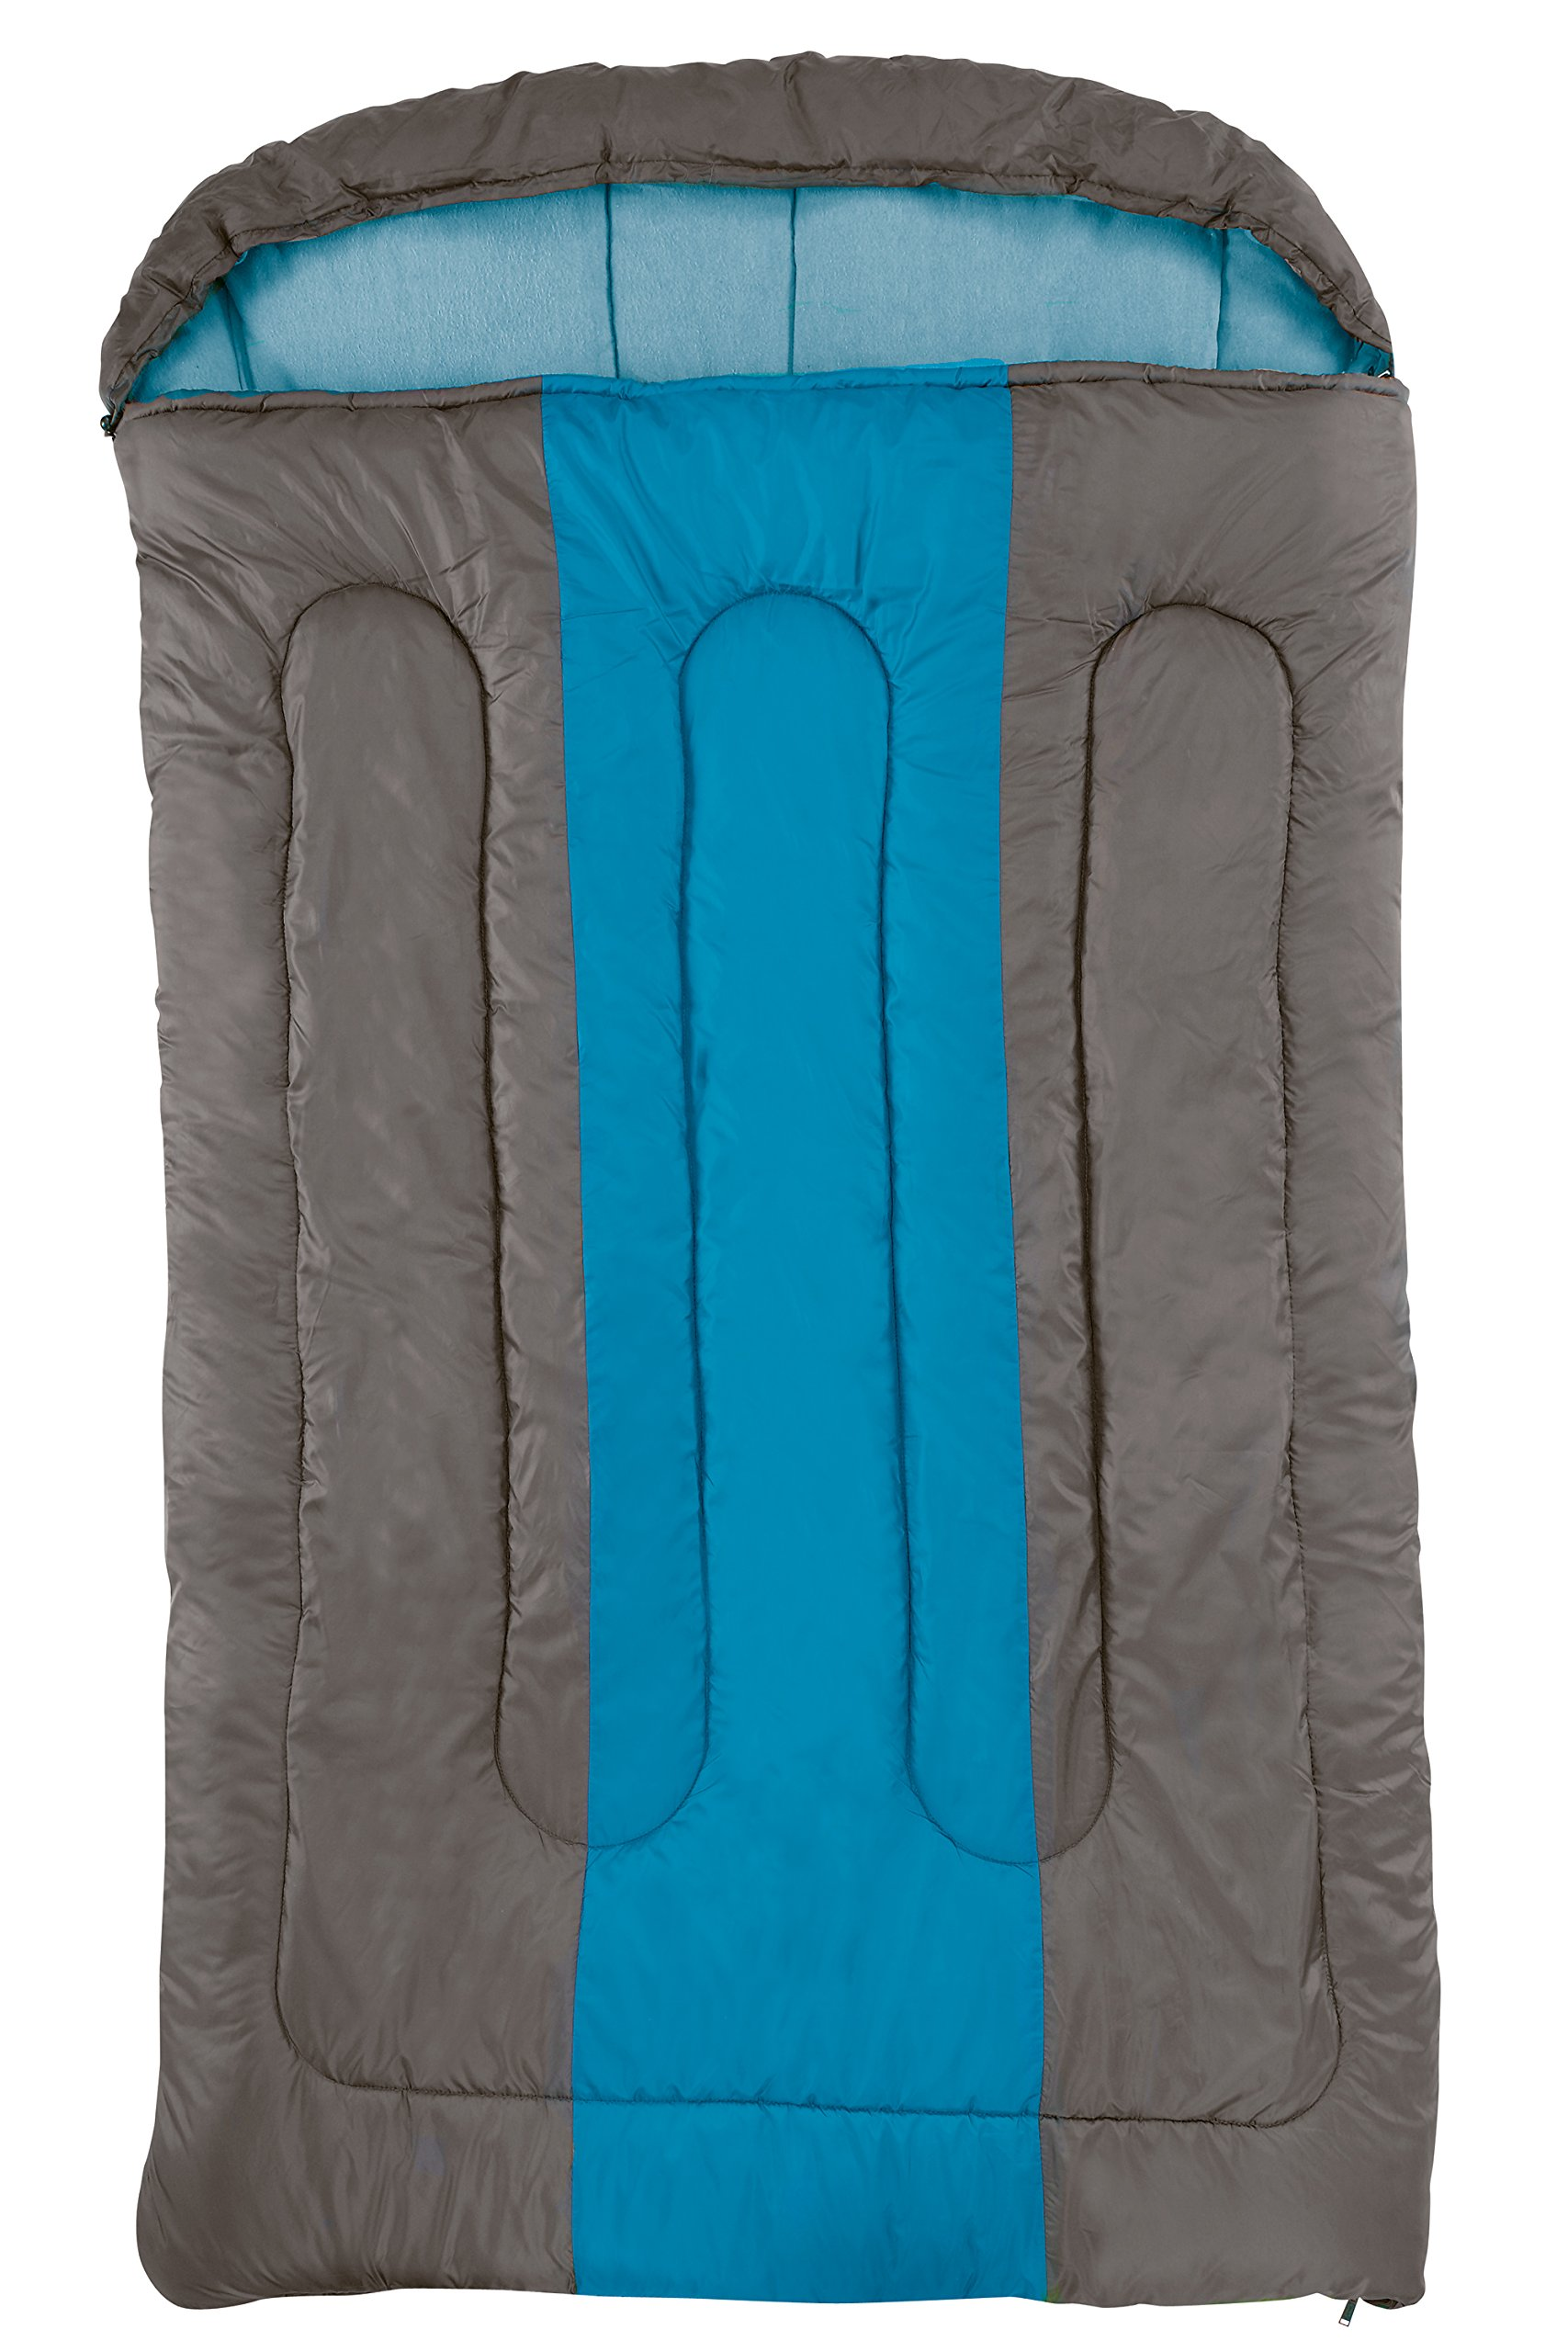 COLEMAN Sleeping Bag Hudson, Rectangular Sleeping Bag, Indoor & Outdoor, 2 Season, Warm Filling, for Adults 1